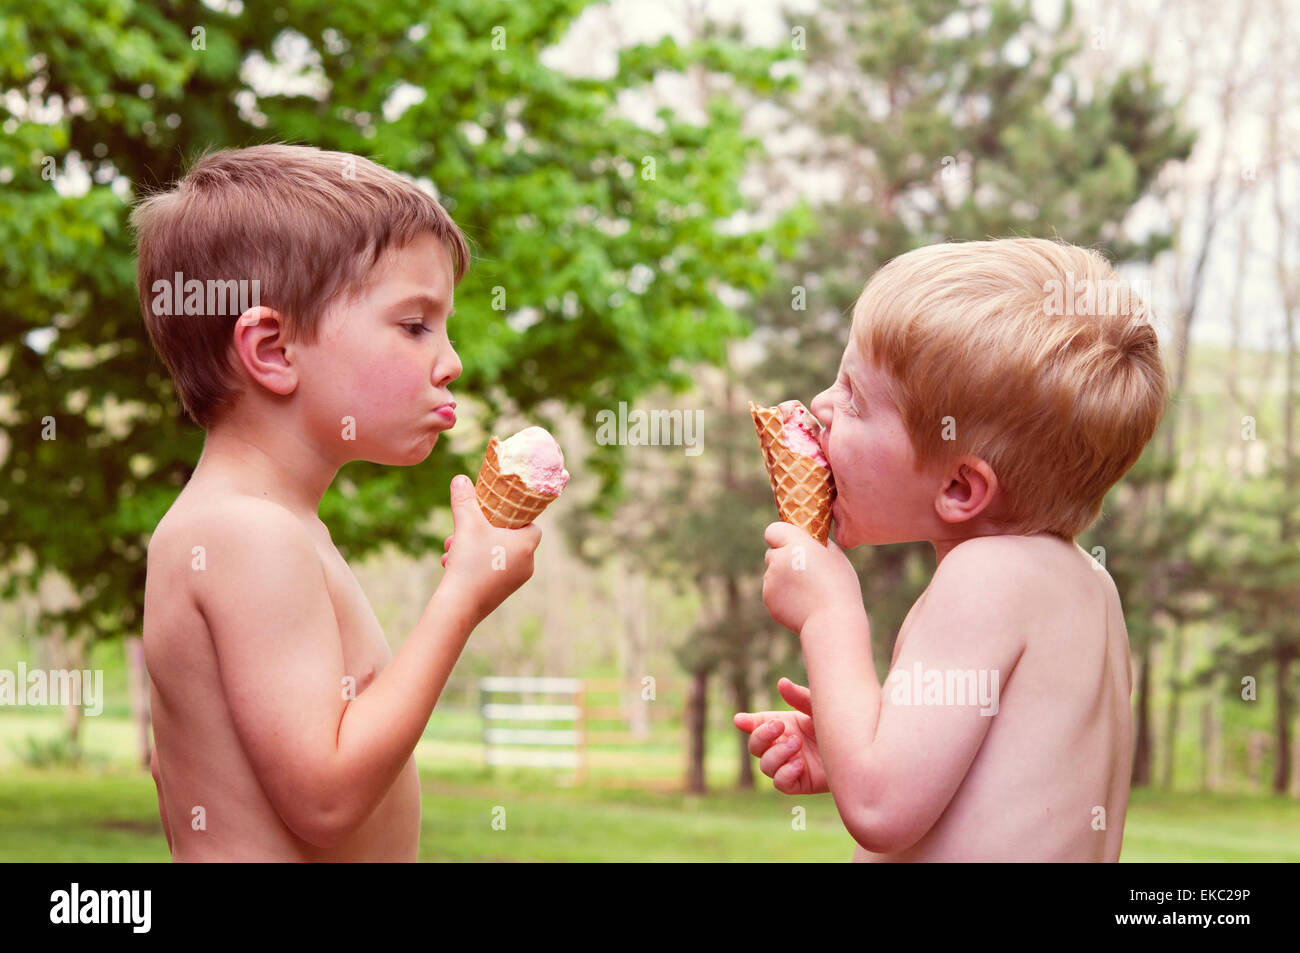 Two boys eating ice-cream - Stock Image